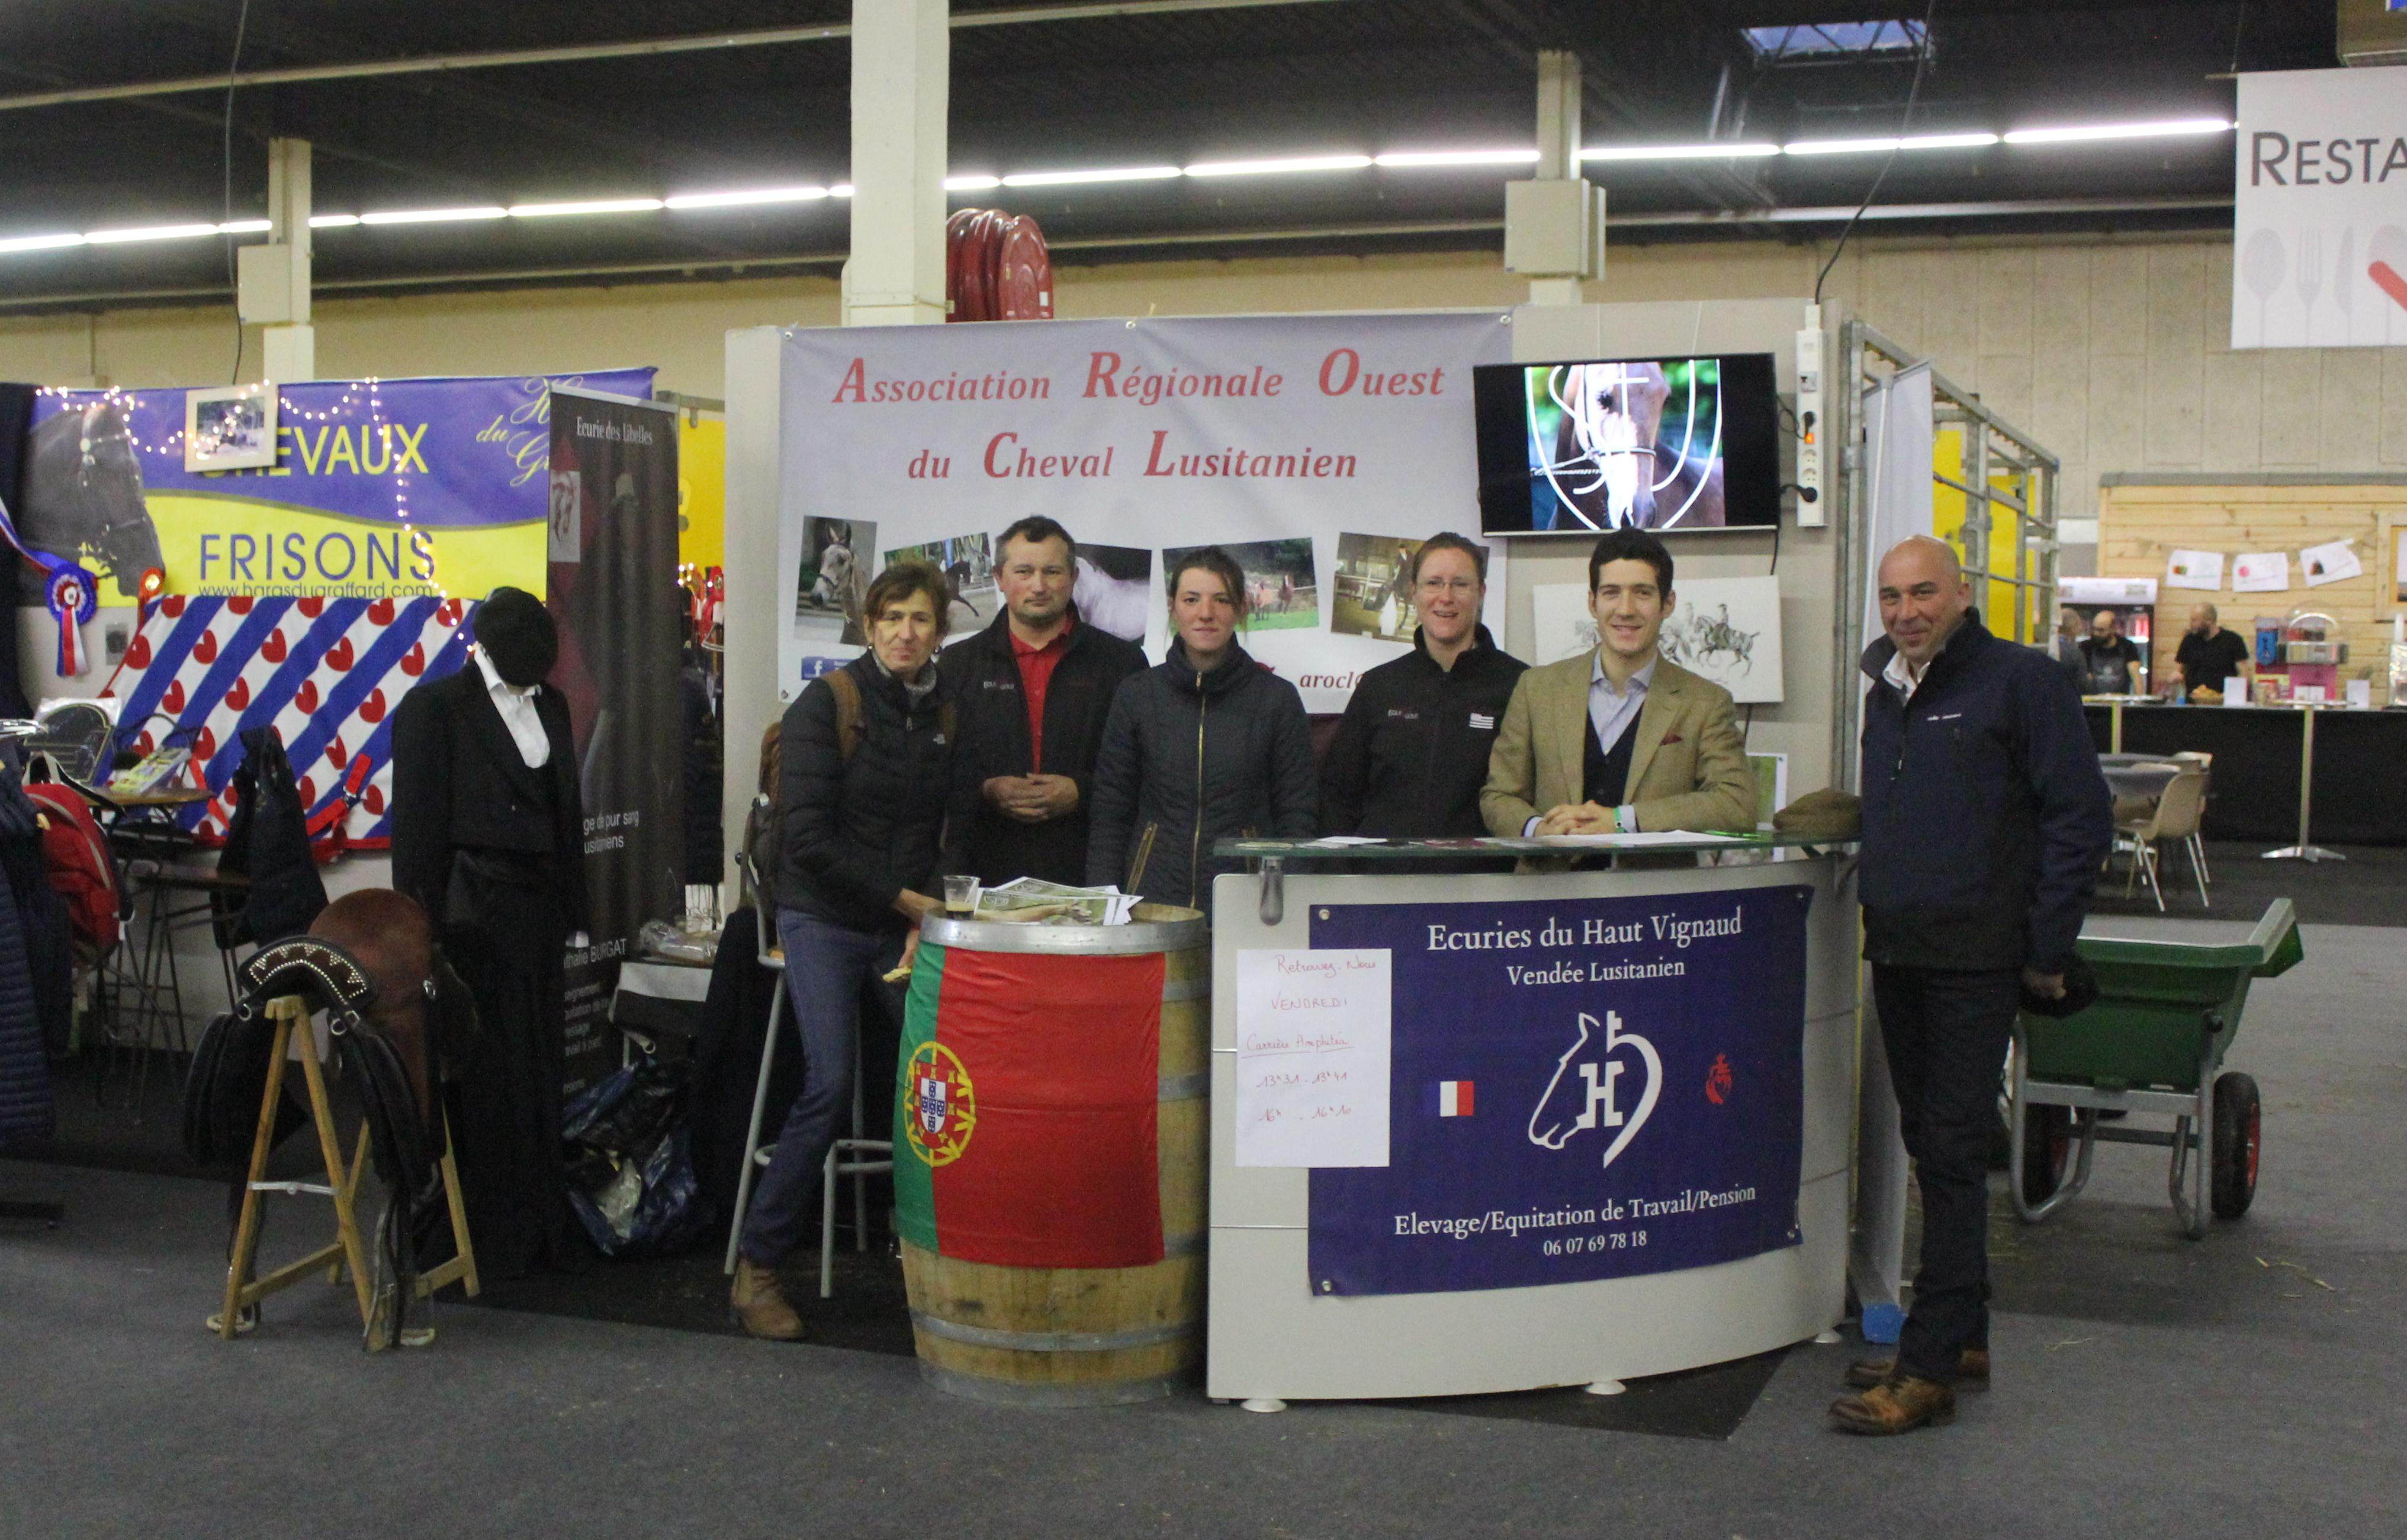 Exhibition in the Angers Horse Show!